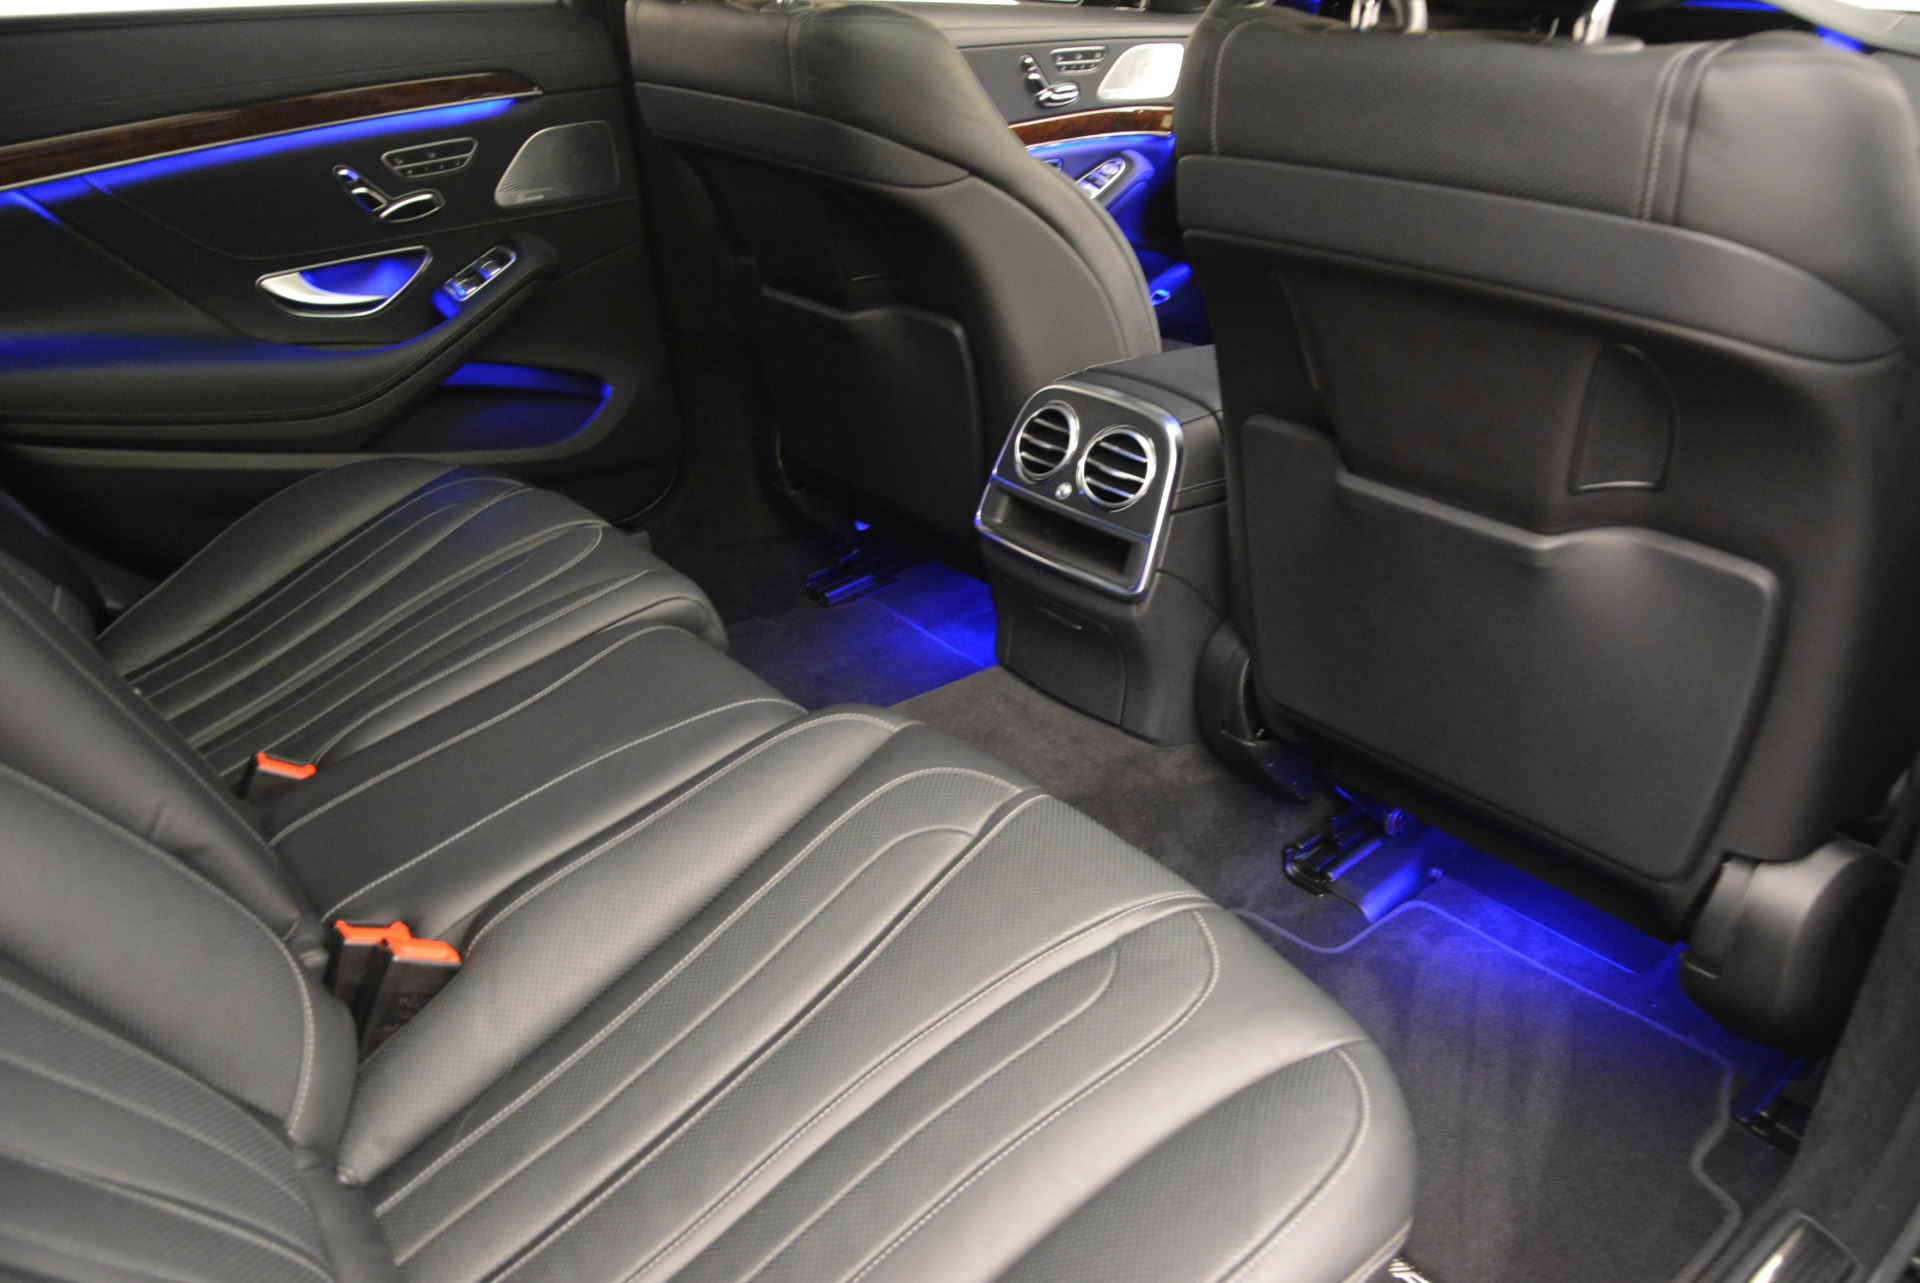 Used 2014 Mercedes Benz S-Class S 63 AMG For Sale In Greenwich, CT 912_p26